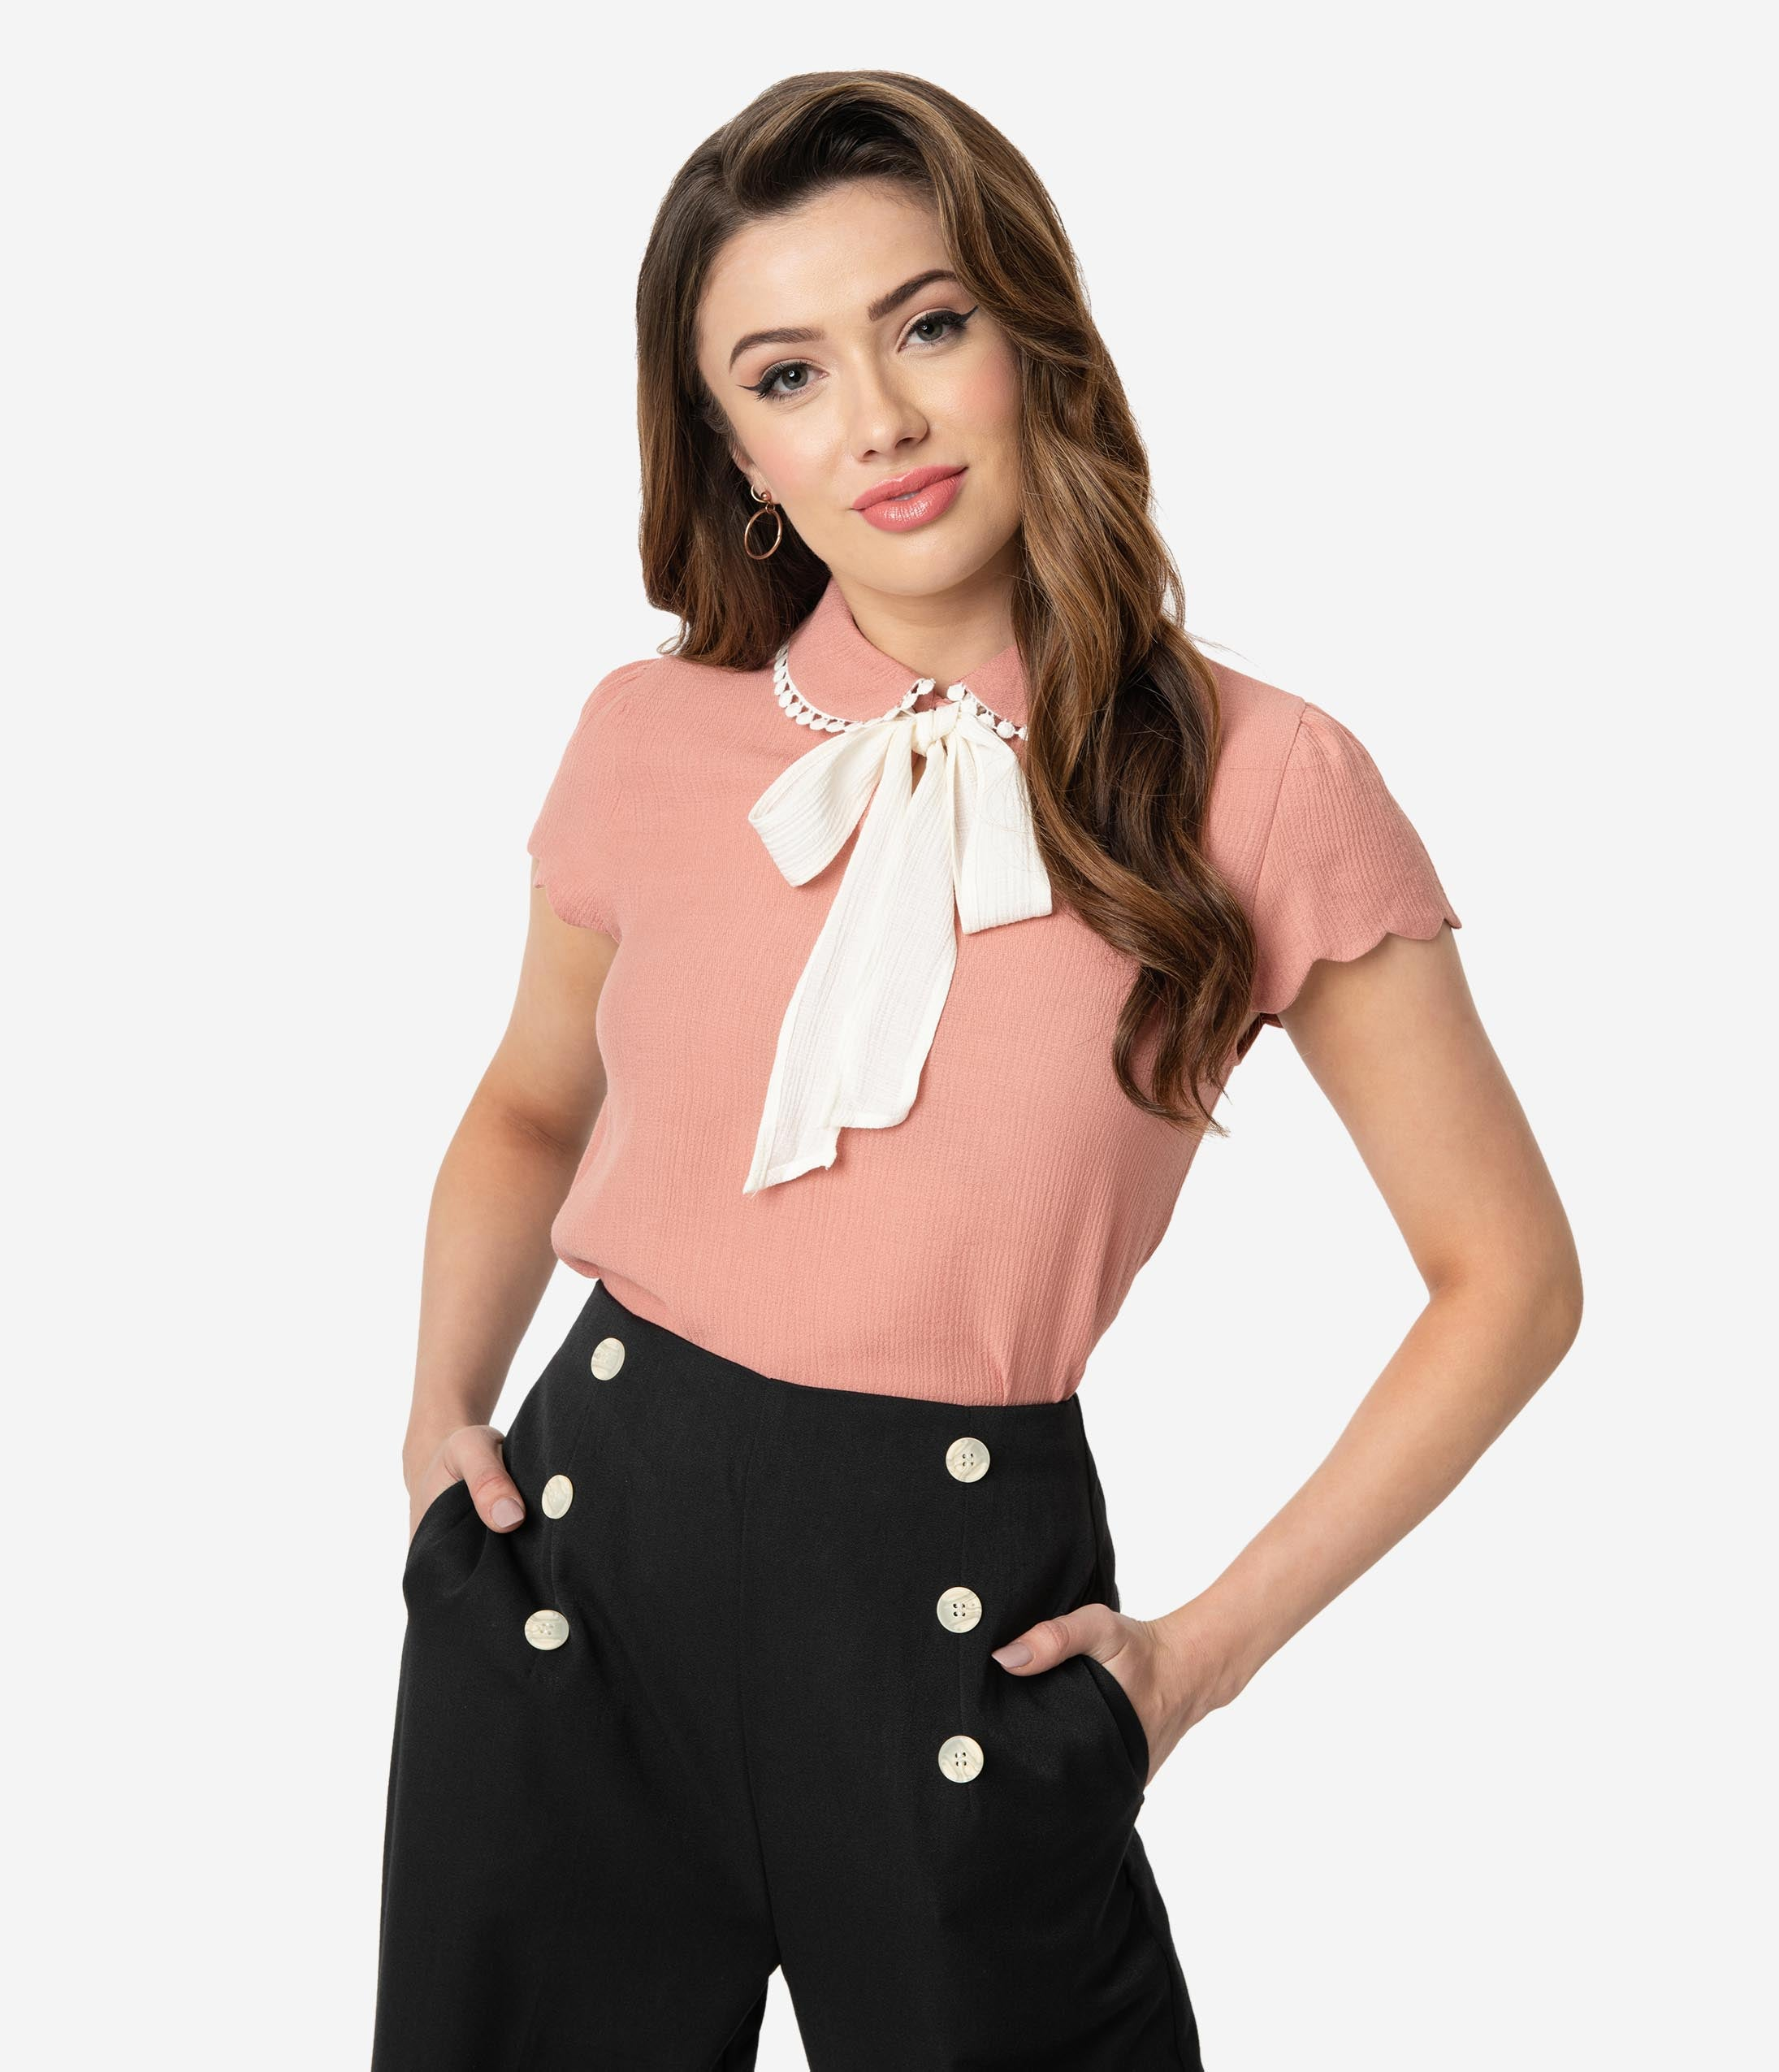 Vintage & Retro Shirts, Halter Tops, Blouses Salmon Pink  Ivory White Woven Bow Tie Short Sleeve Blouse $36.00 AT vintagedancer.com